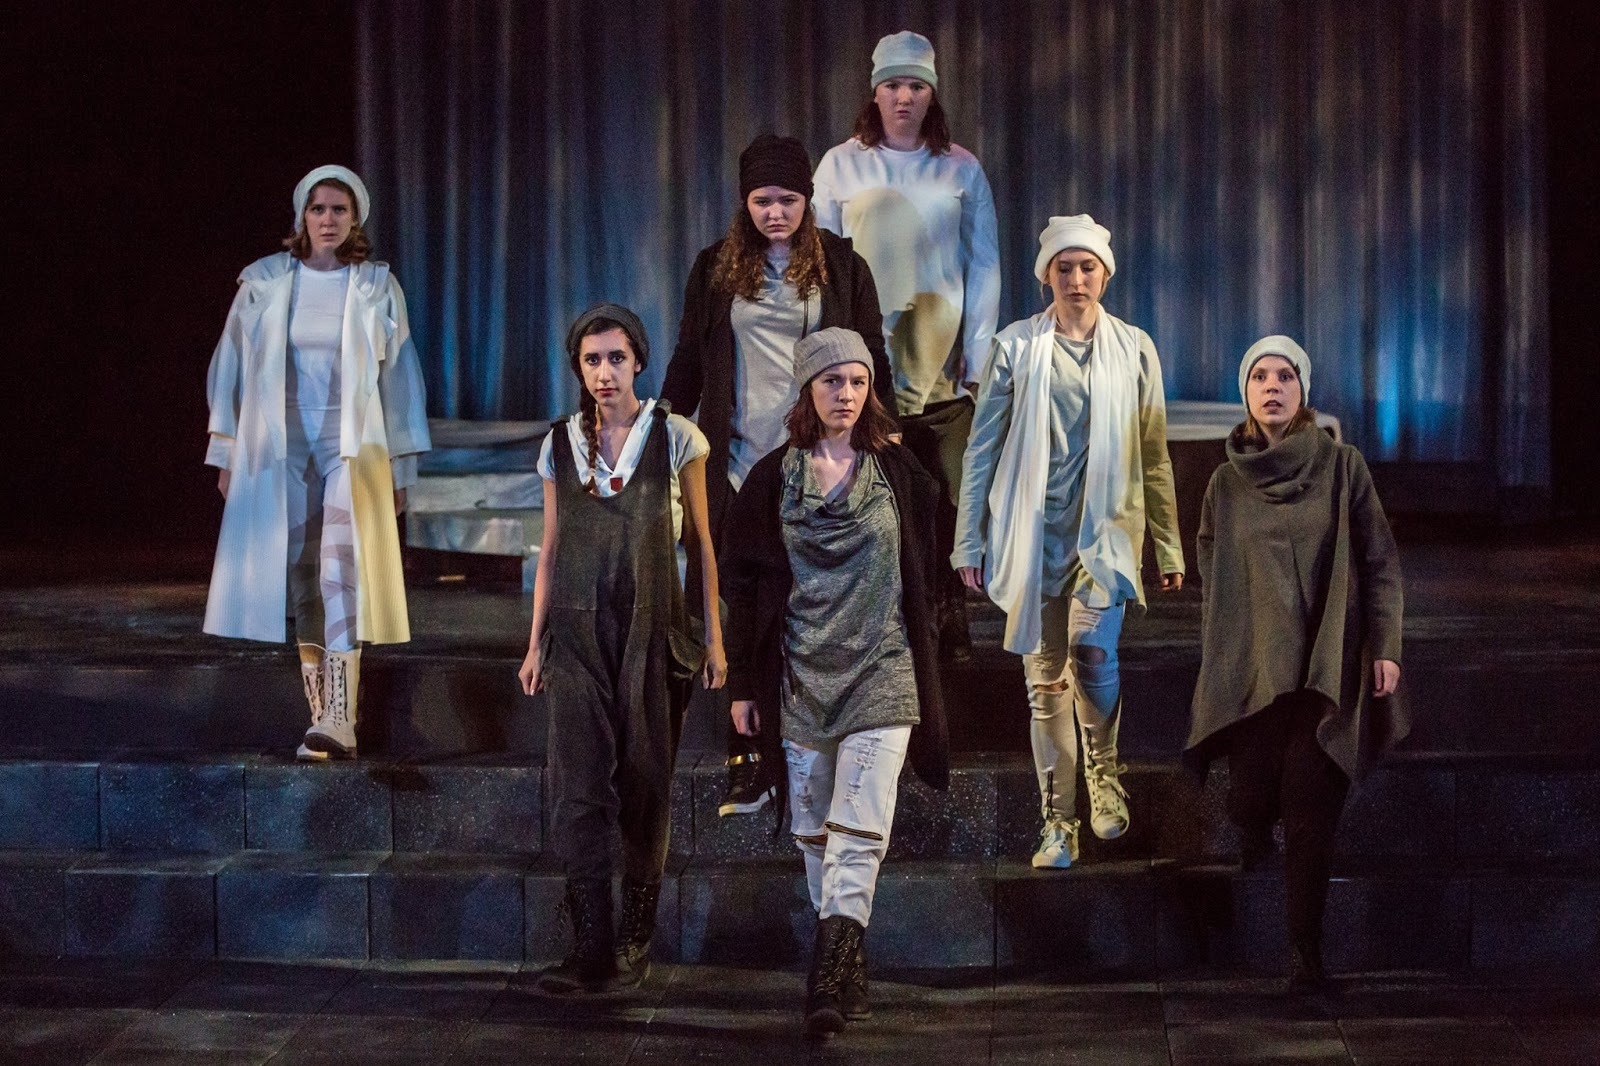 Marilyn Arnold, Parvuna Sulaiman, Tori Thomas, Erica Withrow, Claire Cunningham, Nick Balint and Miranda Jagels Félix in SLU's production of Antigone, October 2017.